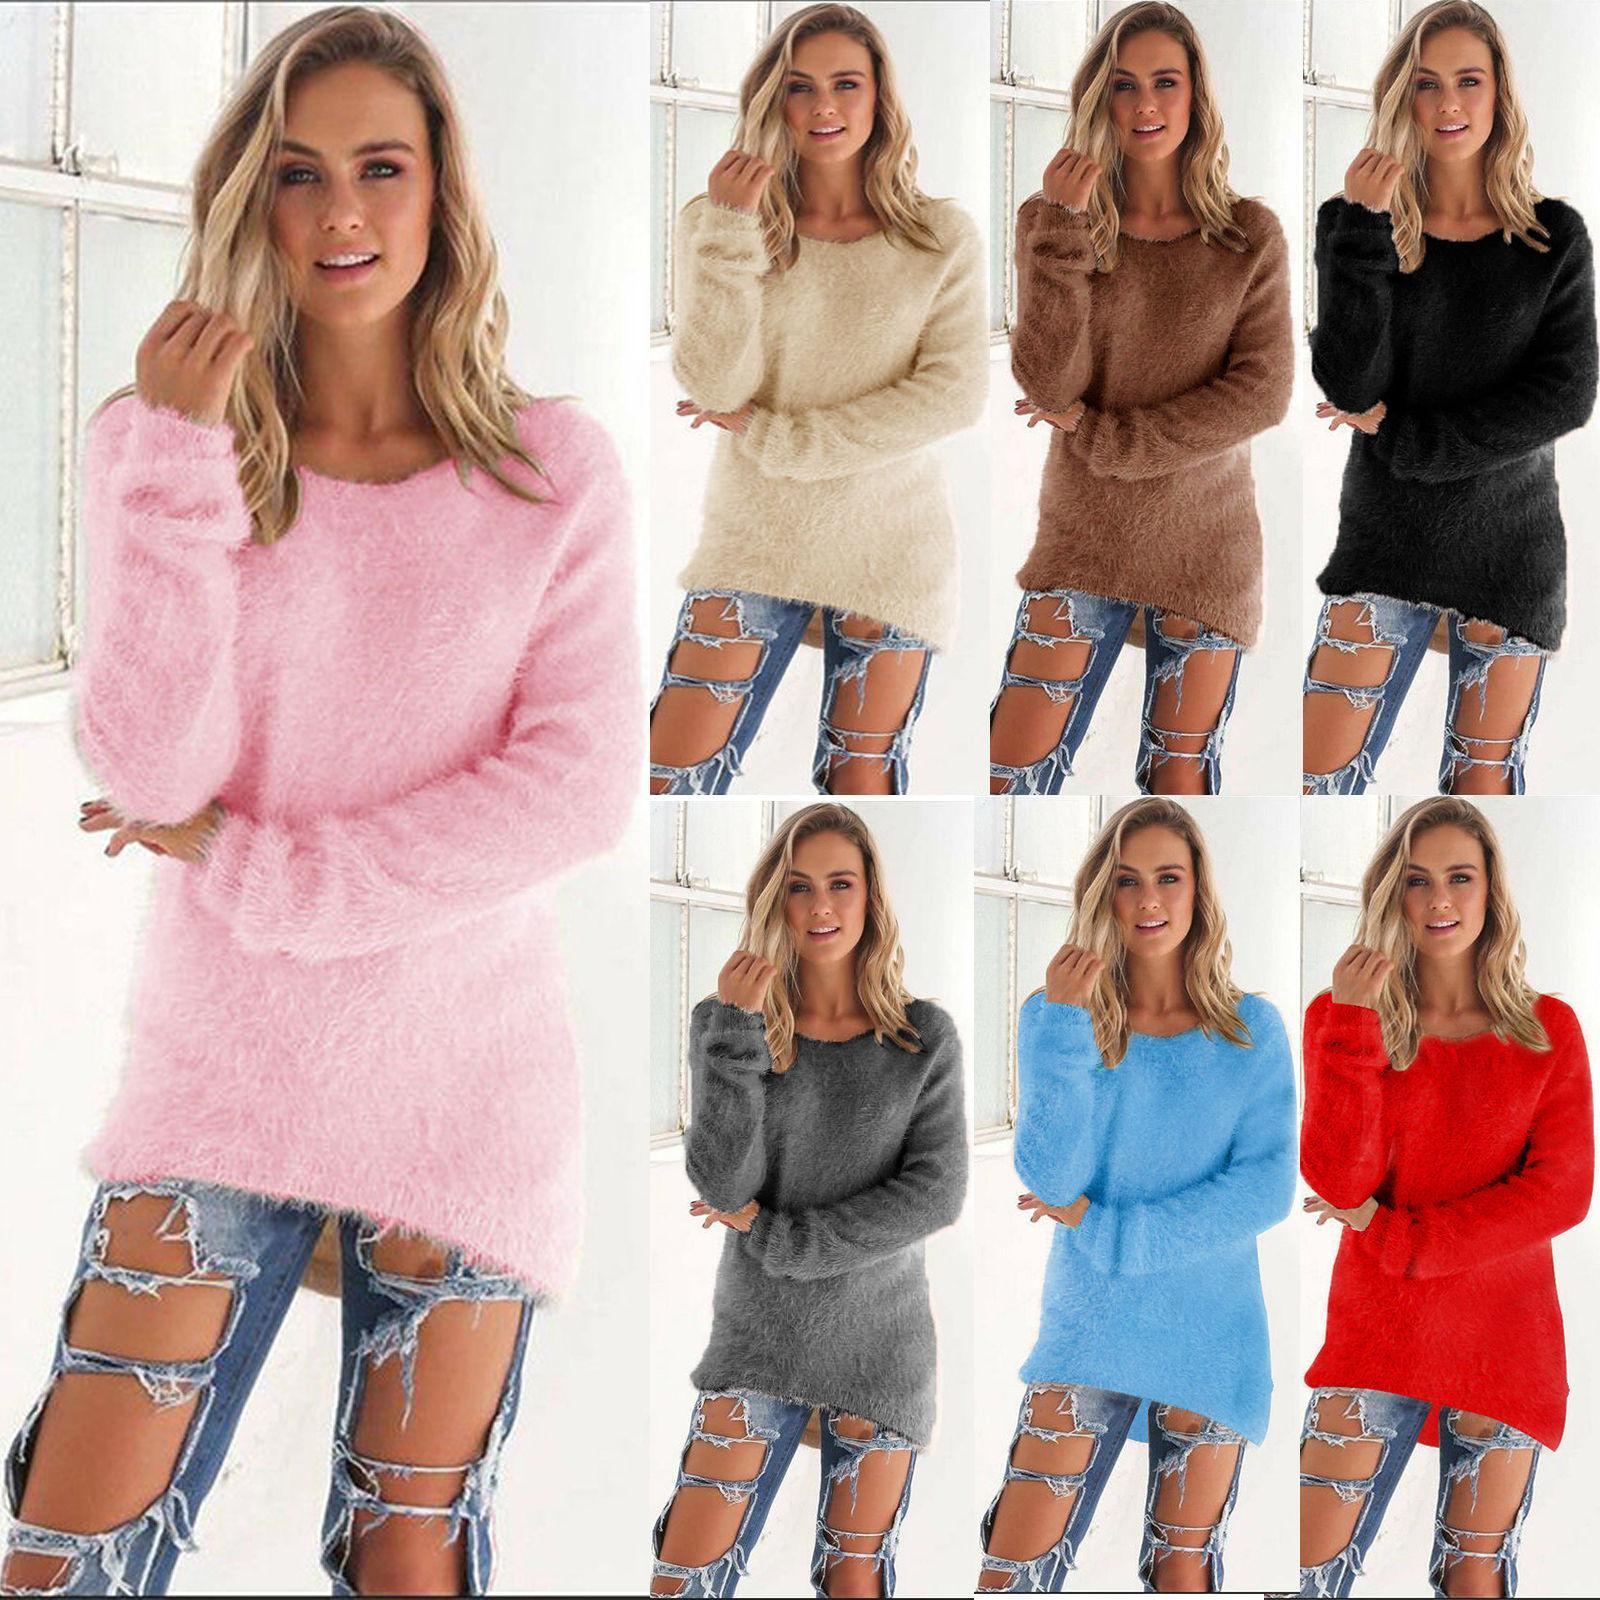 292523df56c596 2019 Womens Ladies Long Sleeve Velvet Chunky Knitwear Blouse V Neck Fluffy  Sweater Sweatshirt Winter Warm Pullover Jumpers Tops From Besttbuy, ...